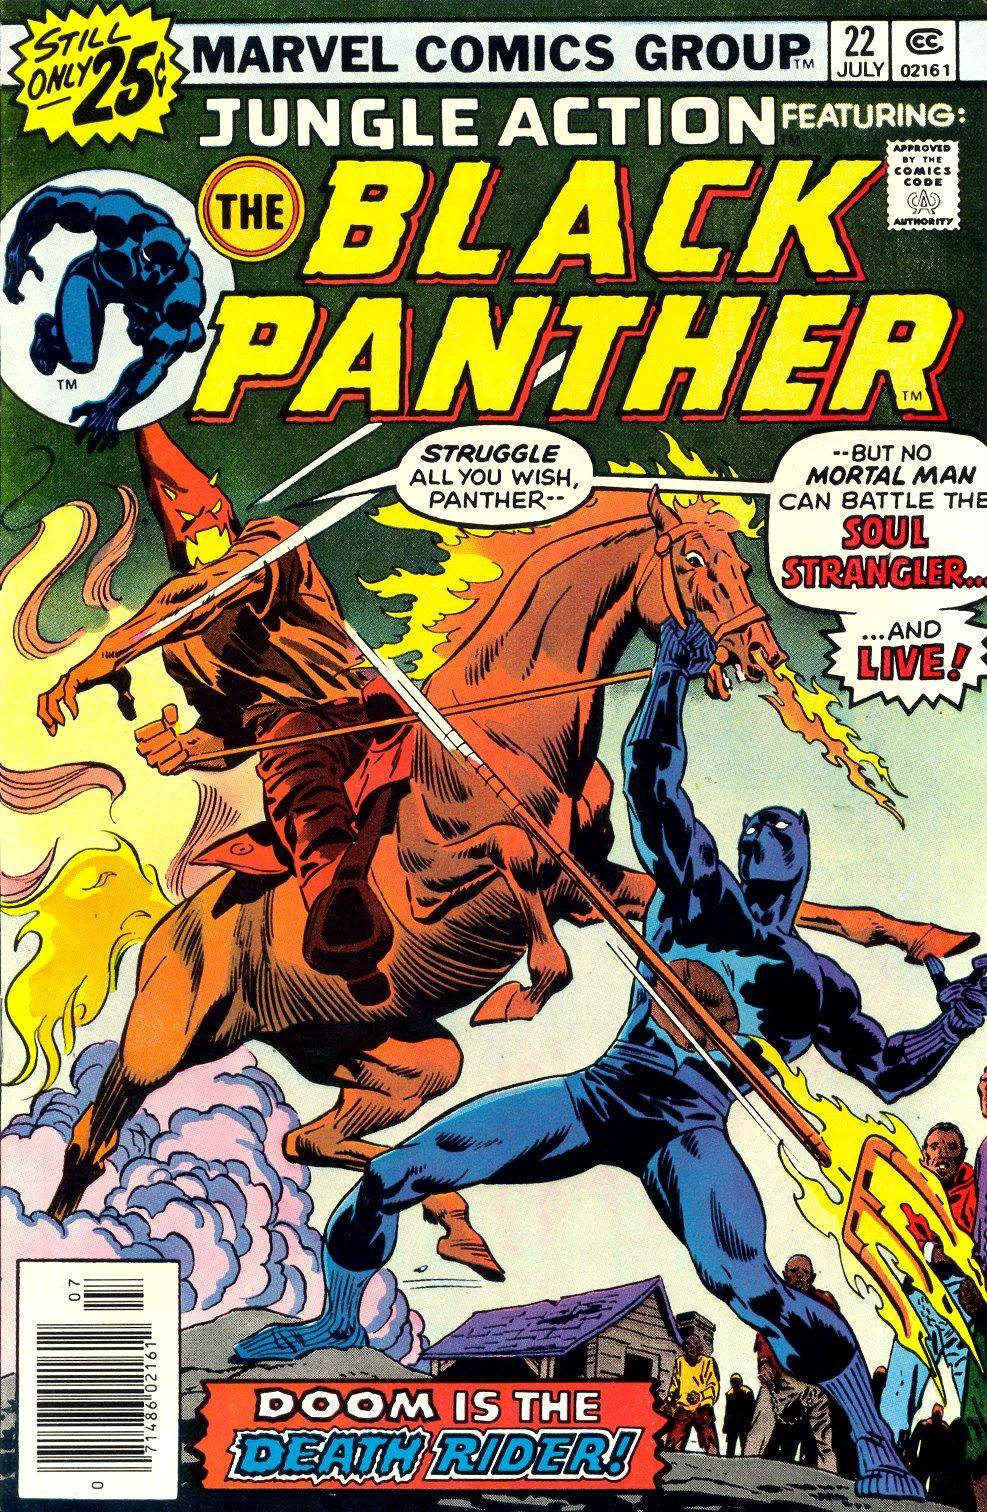 Jungle Action v2 022 featuring Black Panther